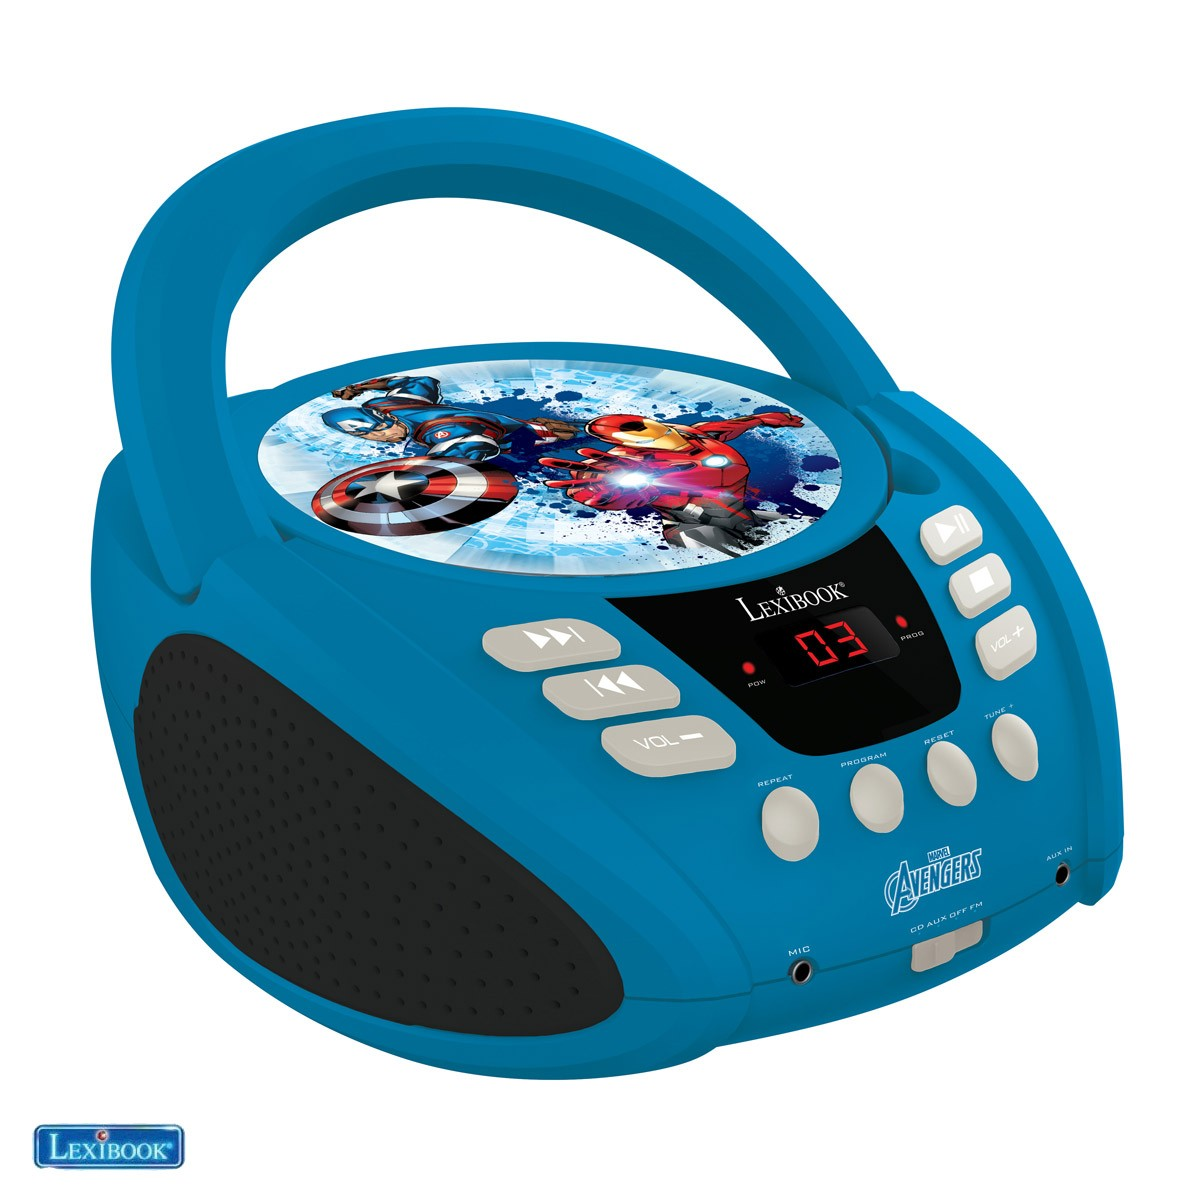 Marvel Avengers Iron Man Radio lecteur CD